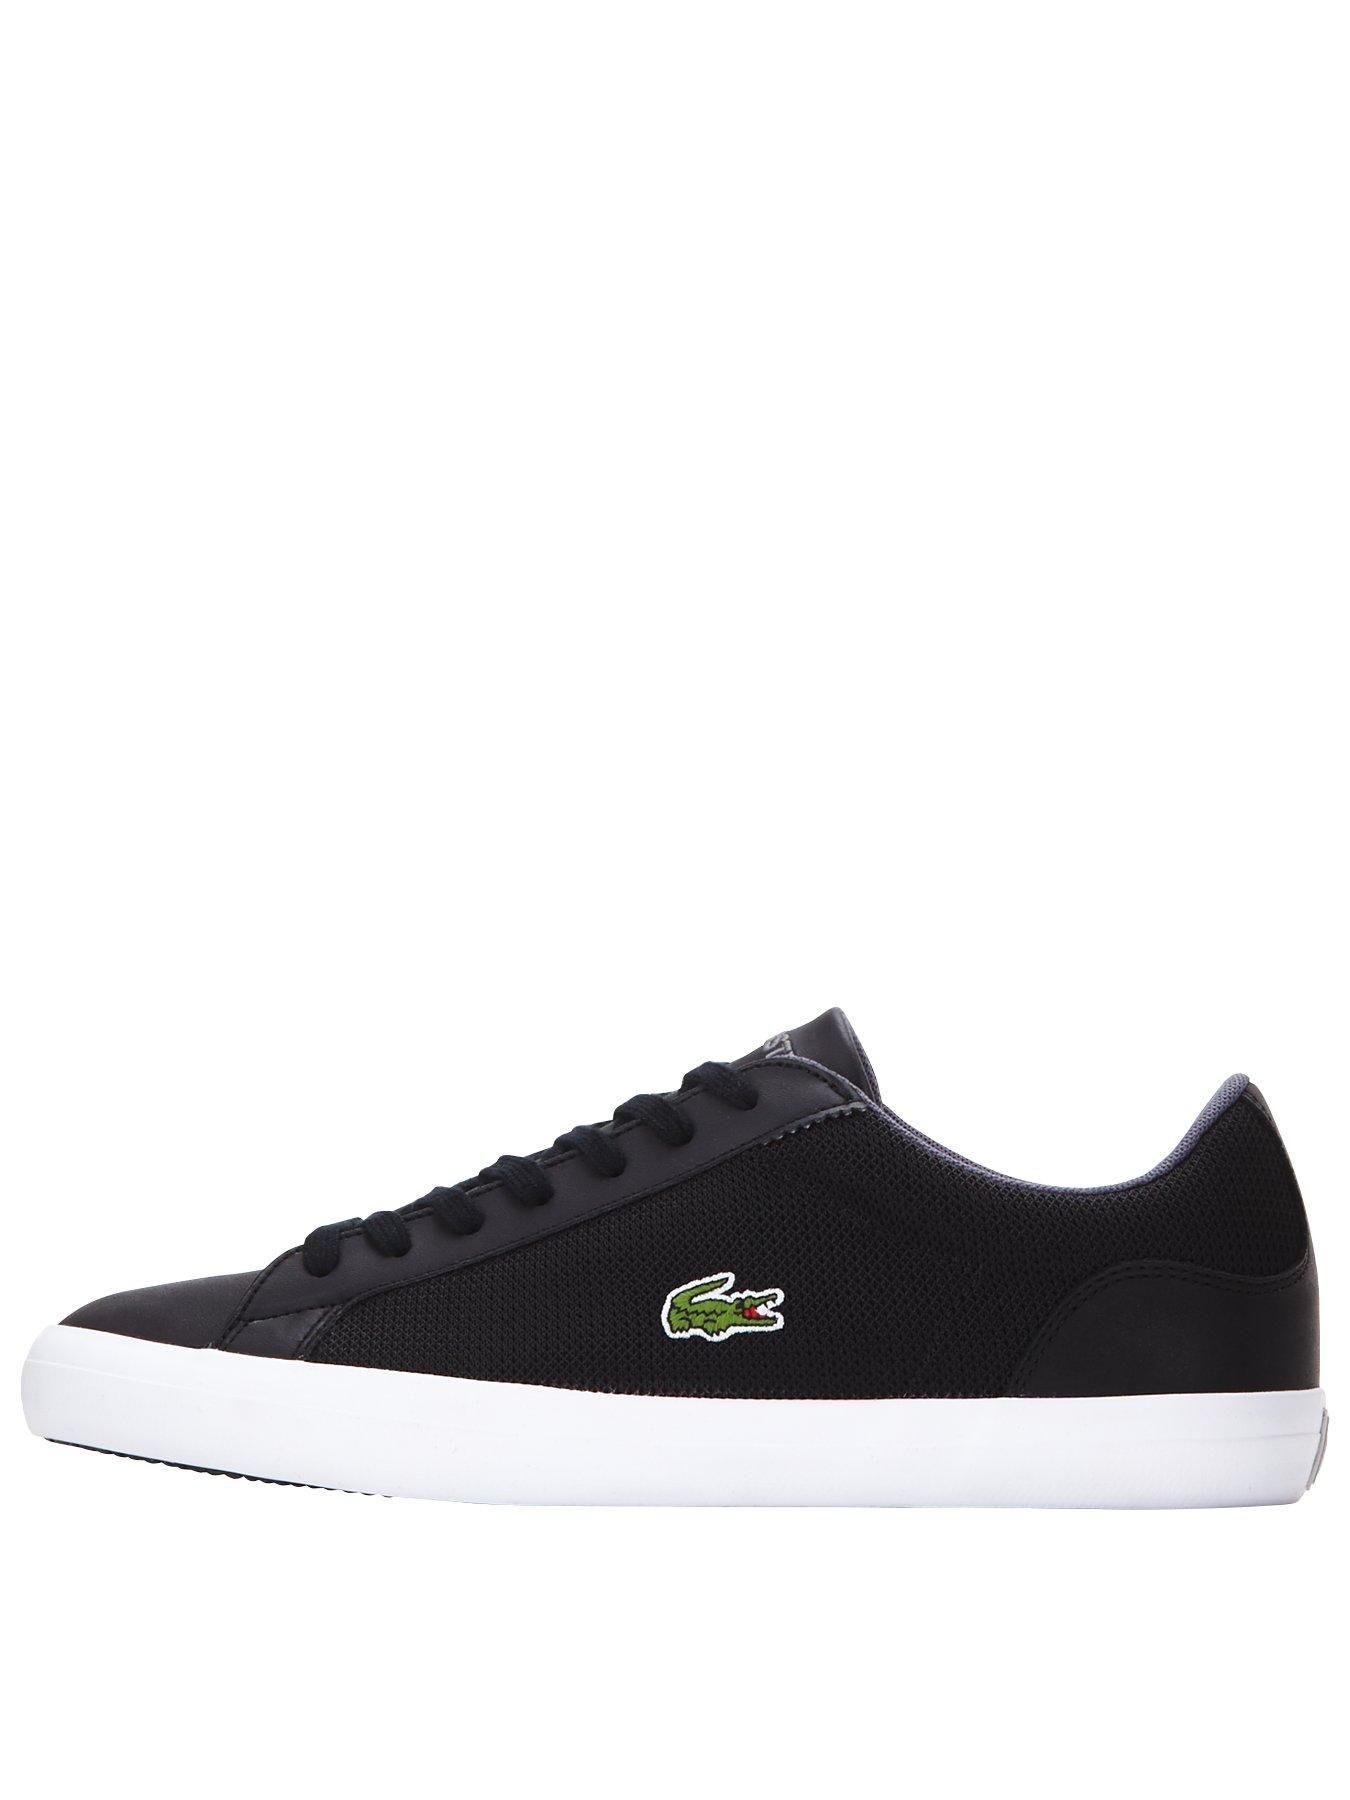 4ab52cbe74d8 Lacoste Lerond Mens Trainers – Black A classic French style from a  high-quality brand